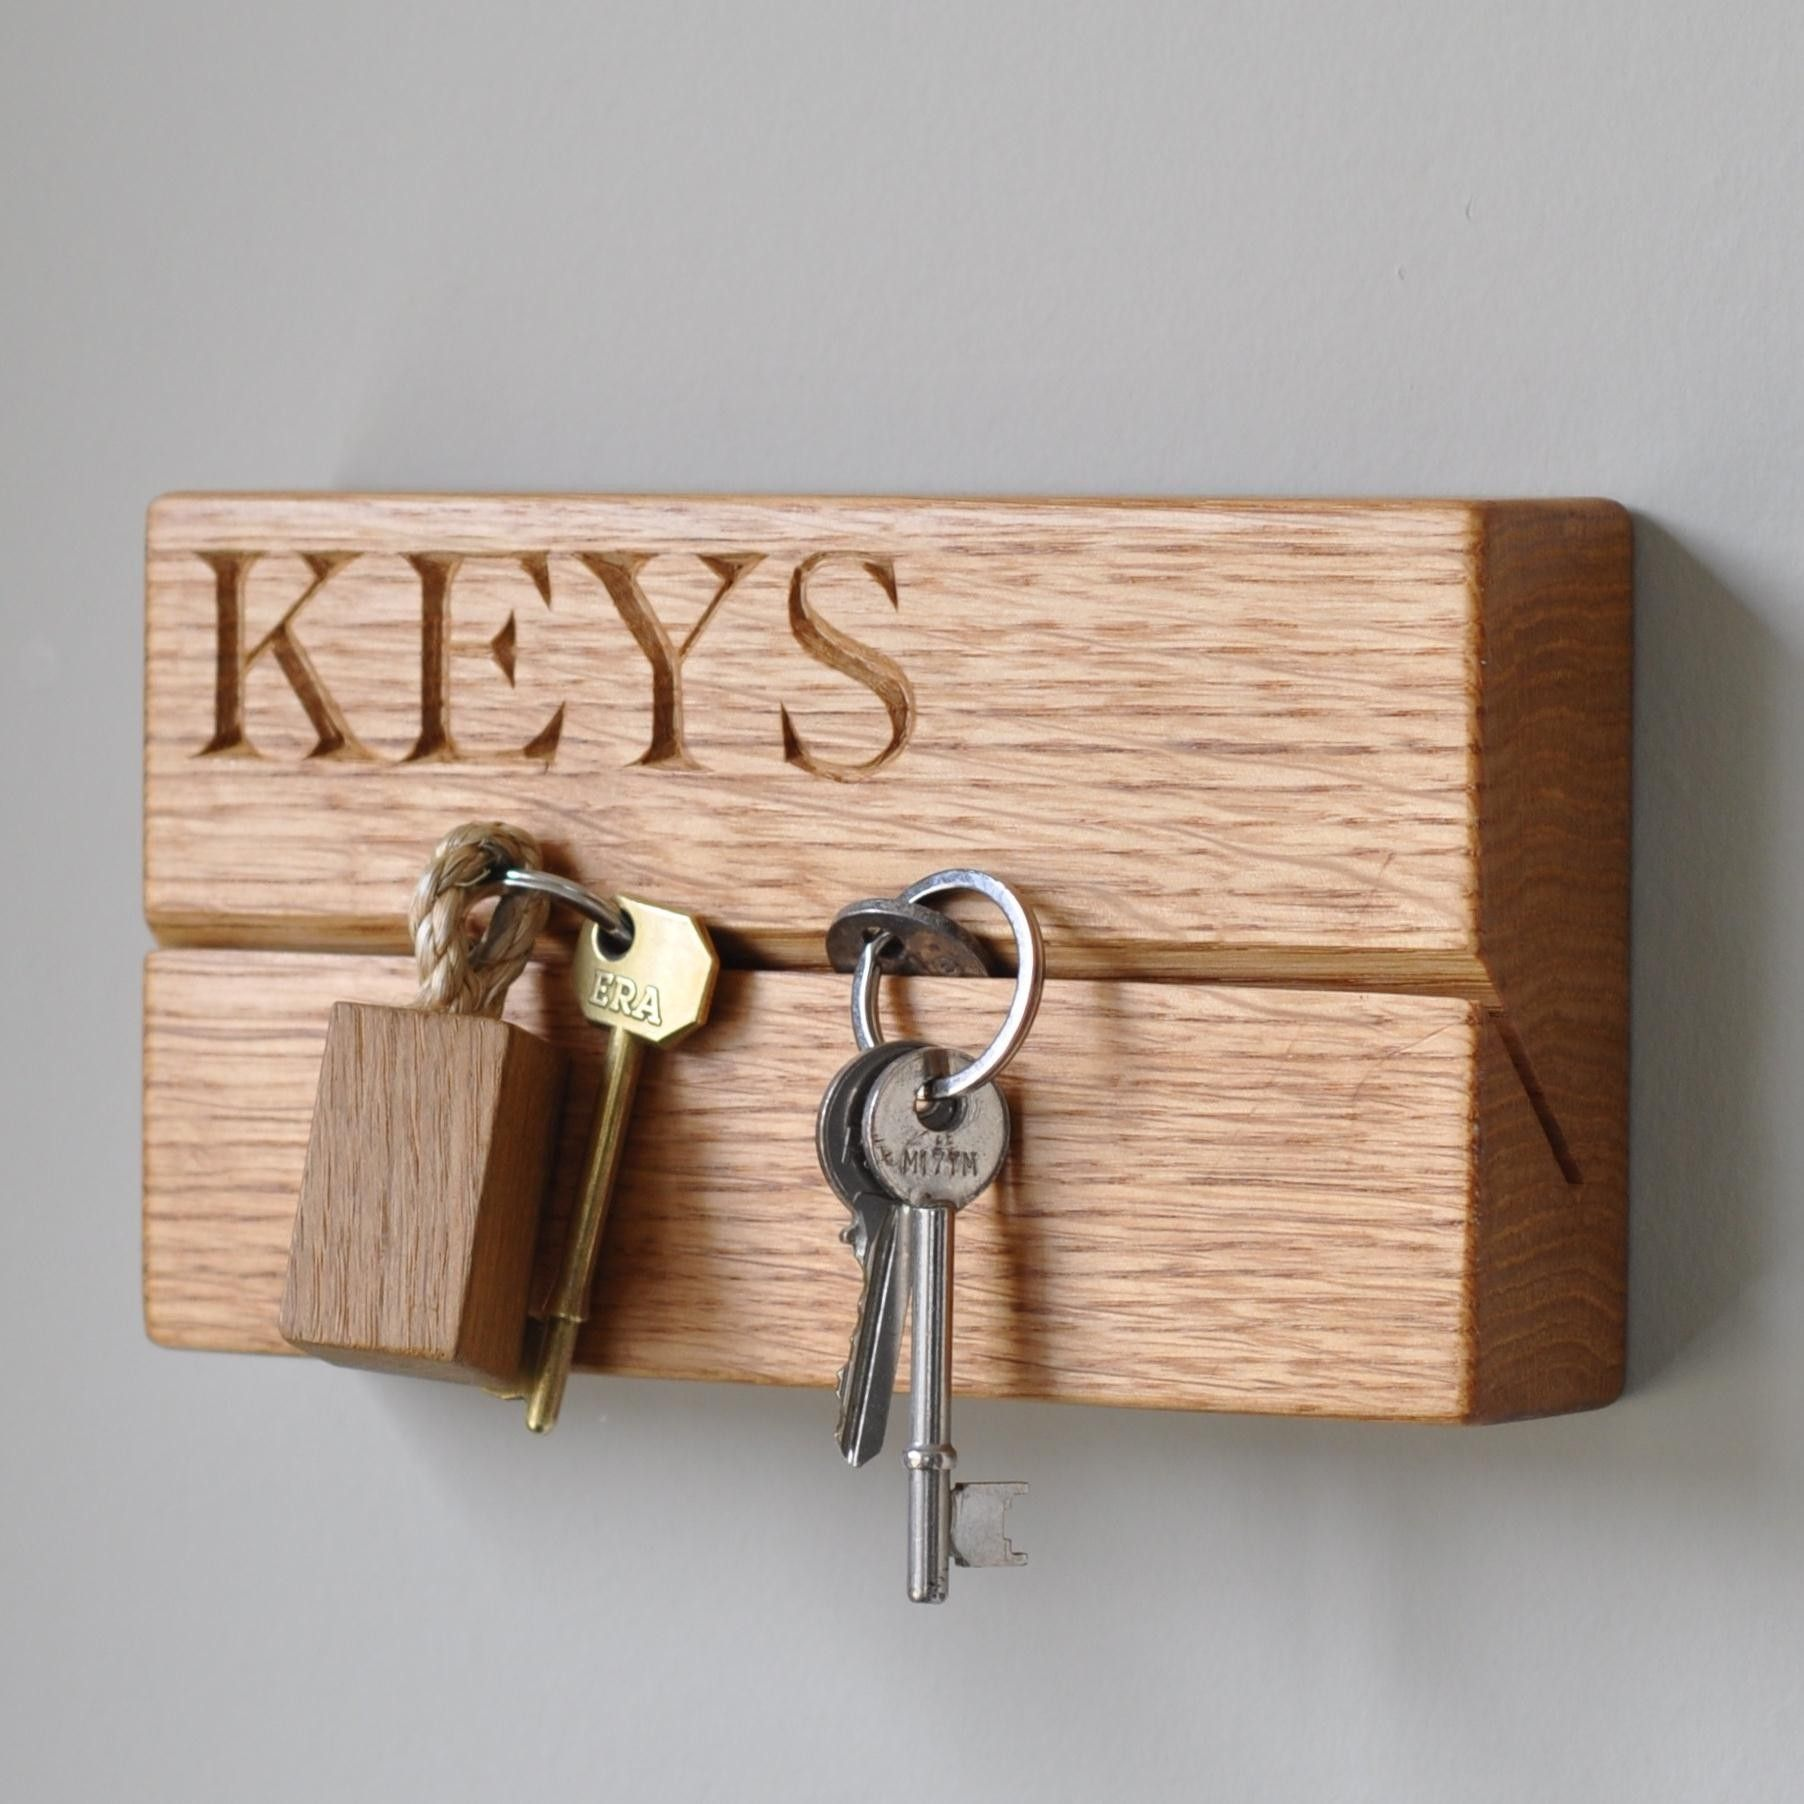 Wooden Key Holder The Handpicked Collection Key Holder Diy Wooden Key Holder Key Holder